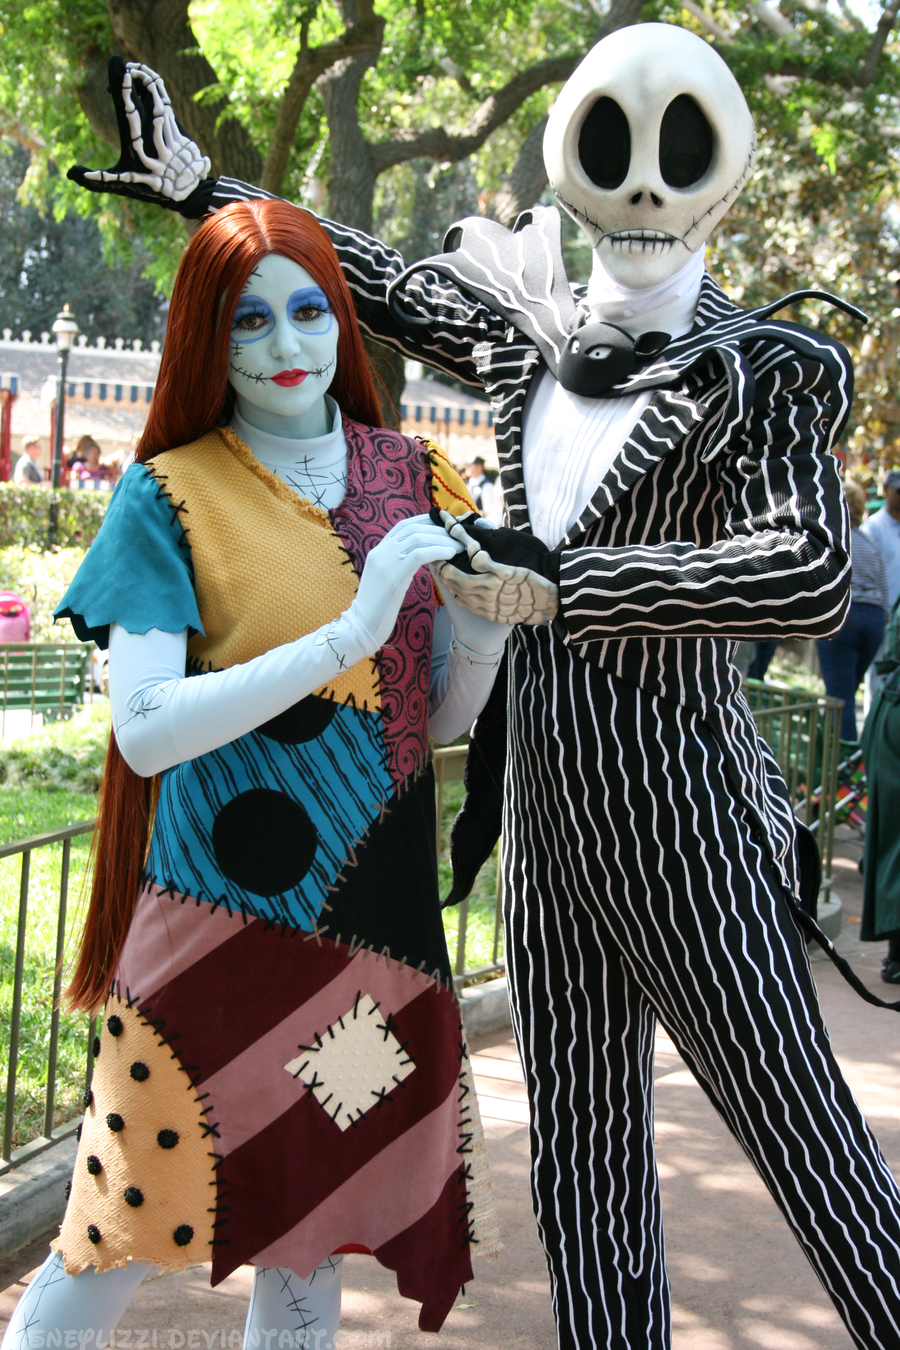 Jack and Sally 07 by DisneyLizzi Jack and Sally 07 by DisneyLizzi  sc 1 st  DeviantArt & Jack and Sally 07 by DisneyLizzi on DeviantArt